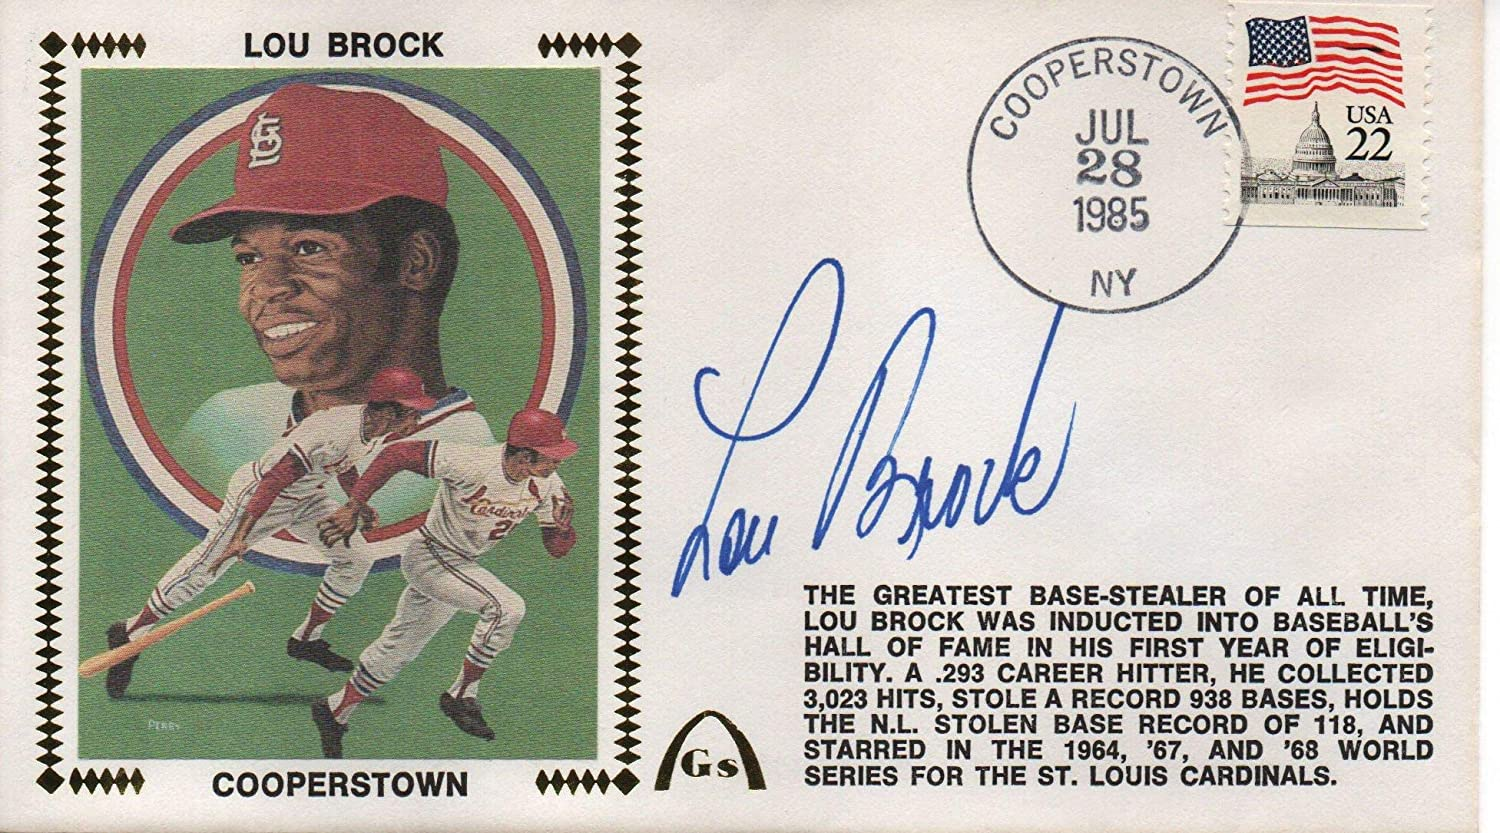 Lou Brock Autographed July 28, 1985 First Day Cover (JSA) - MLB Cut Signatures